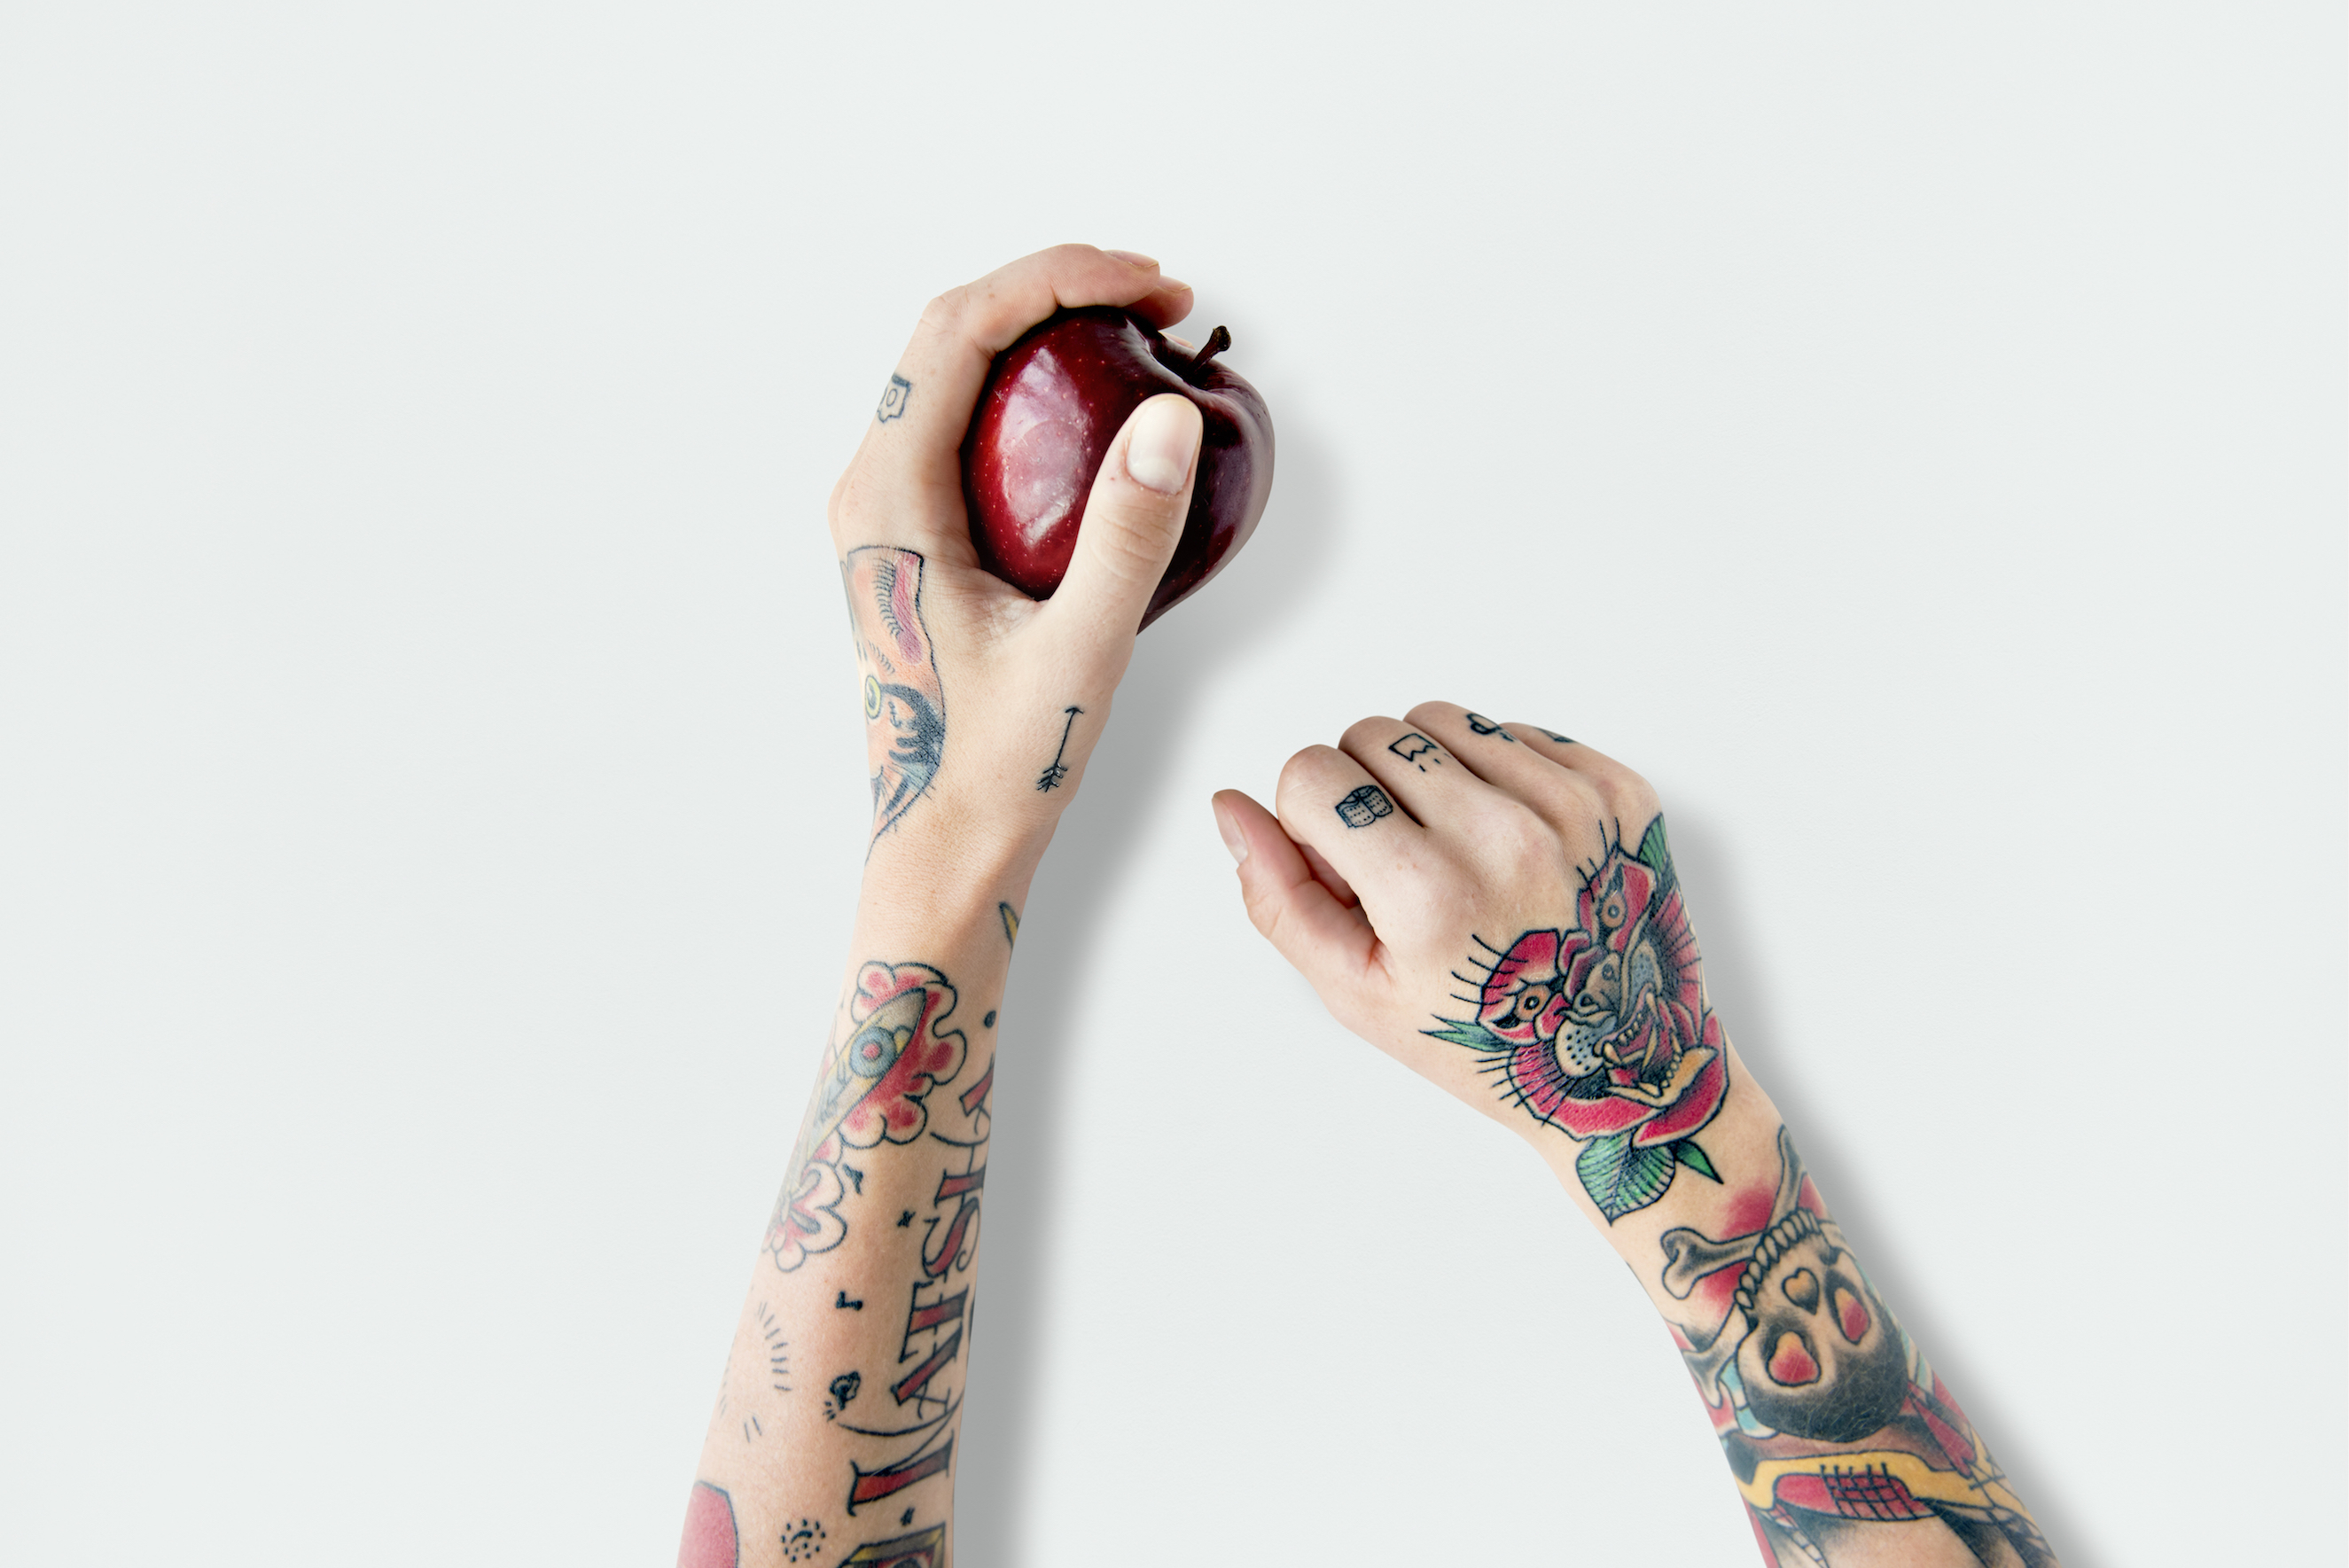 Sick of dealing with annoying and wasteful plastic stickers, Swedish supermarket chain IGA is testing out a way to tattoo our fruit.